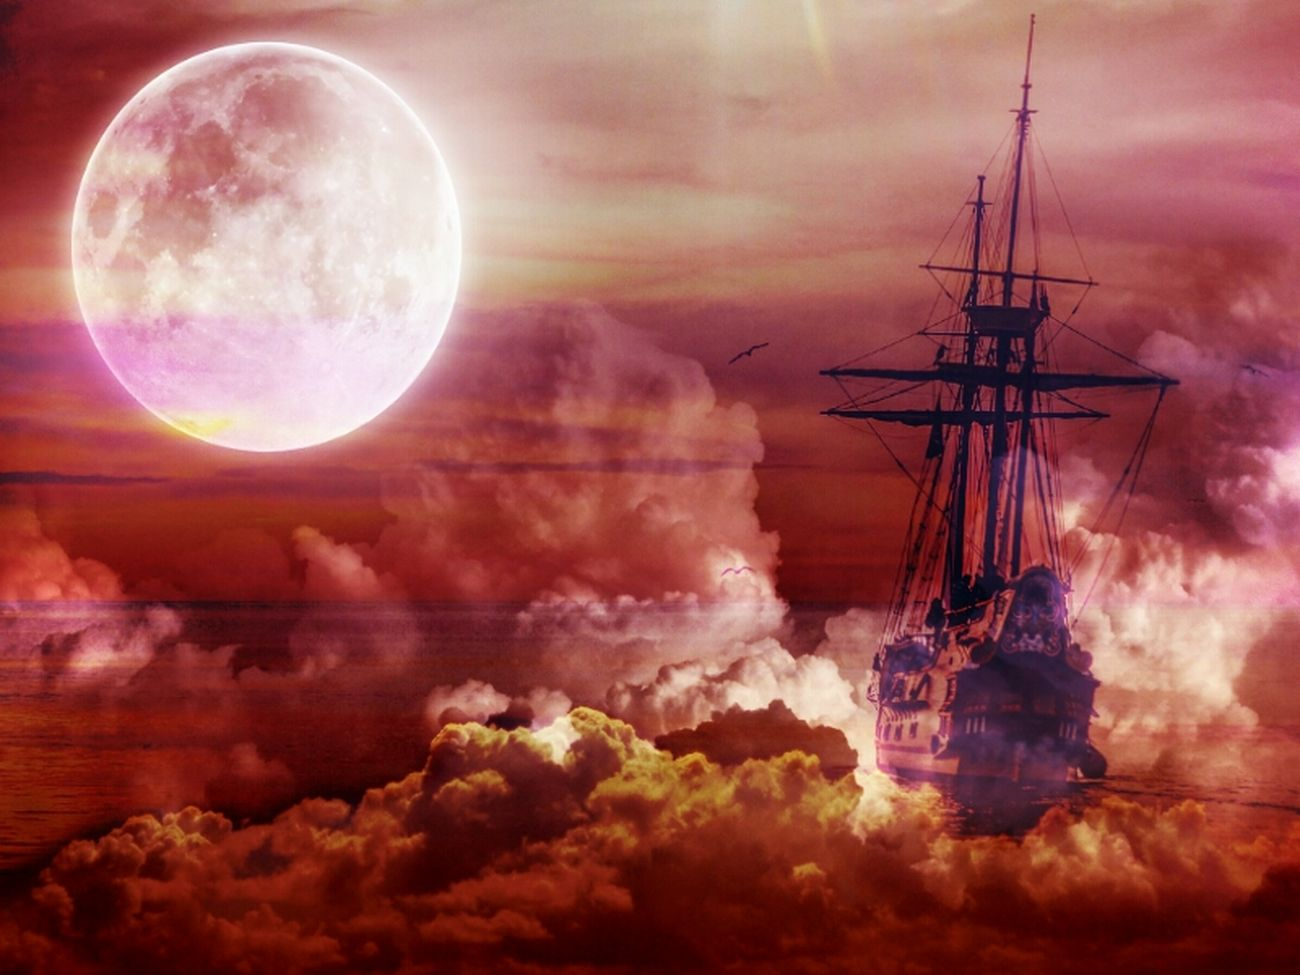 Sailing ⛵⚓on the clouds ☁☁ Moon Night Reflection Nautical Vessel Sunset No People Landscape Outdoors Sky Astronomy Fantasy Edits Fantasy Dreaming Fantasy World Surrealism Surreal Surrealist Art Getting Inspired Getting Creative Creativity Sailing Ship Fullmoon Skyporn Clouds And Sky Clouds